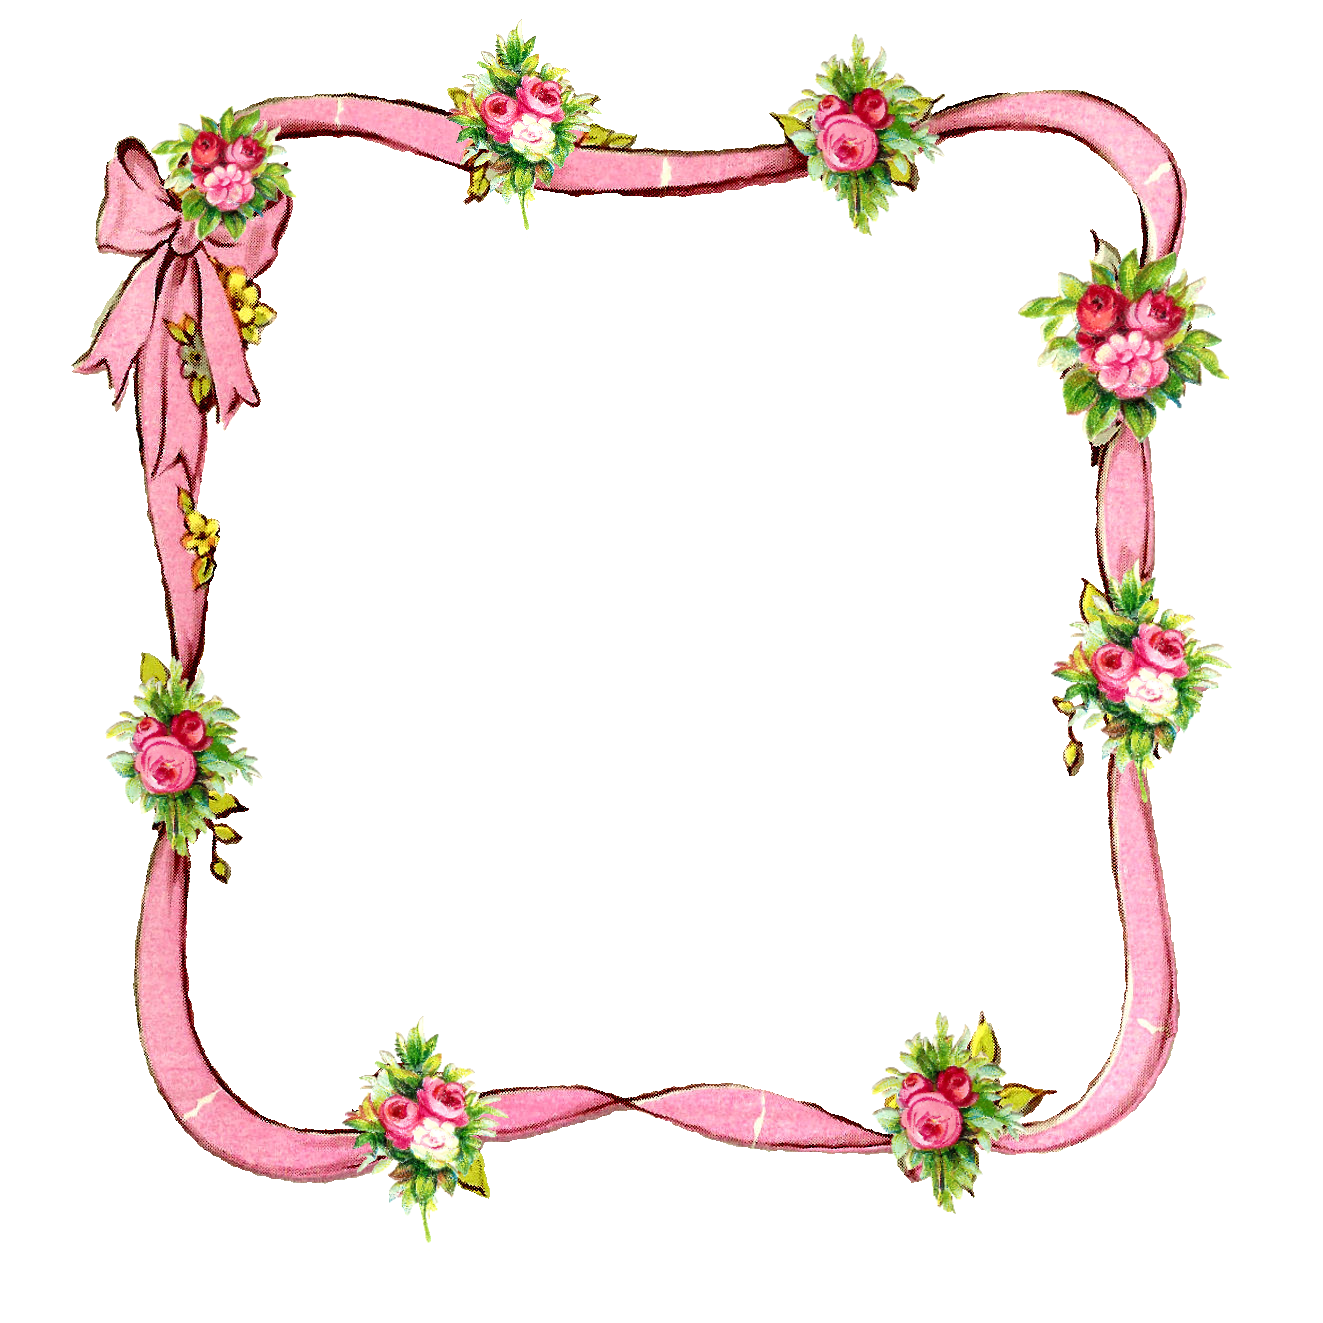 photograph about Free Printable Flower Borders known as The Graphics Monarch: Totally free Printable Do it yourself Rose Ribbon Electronic